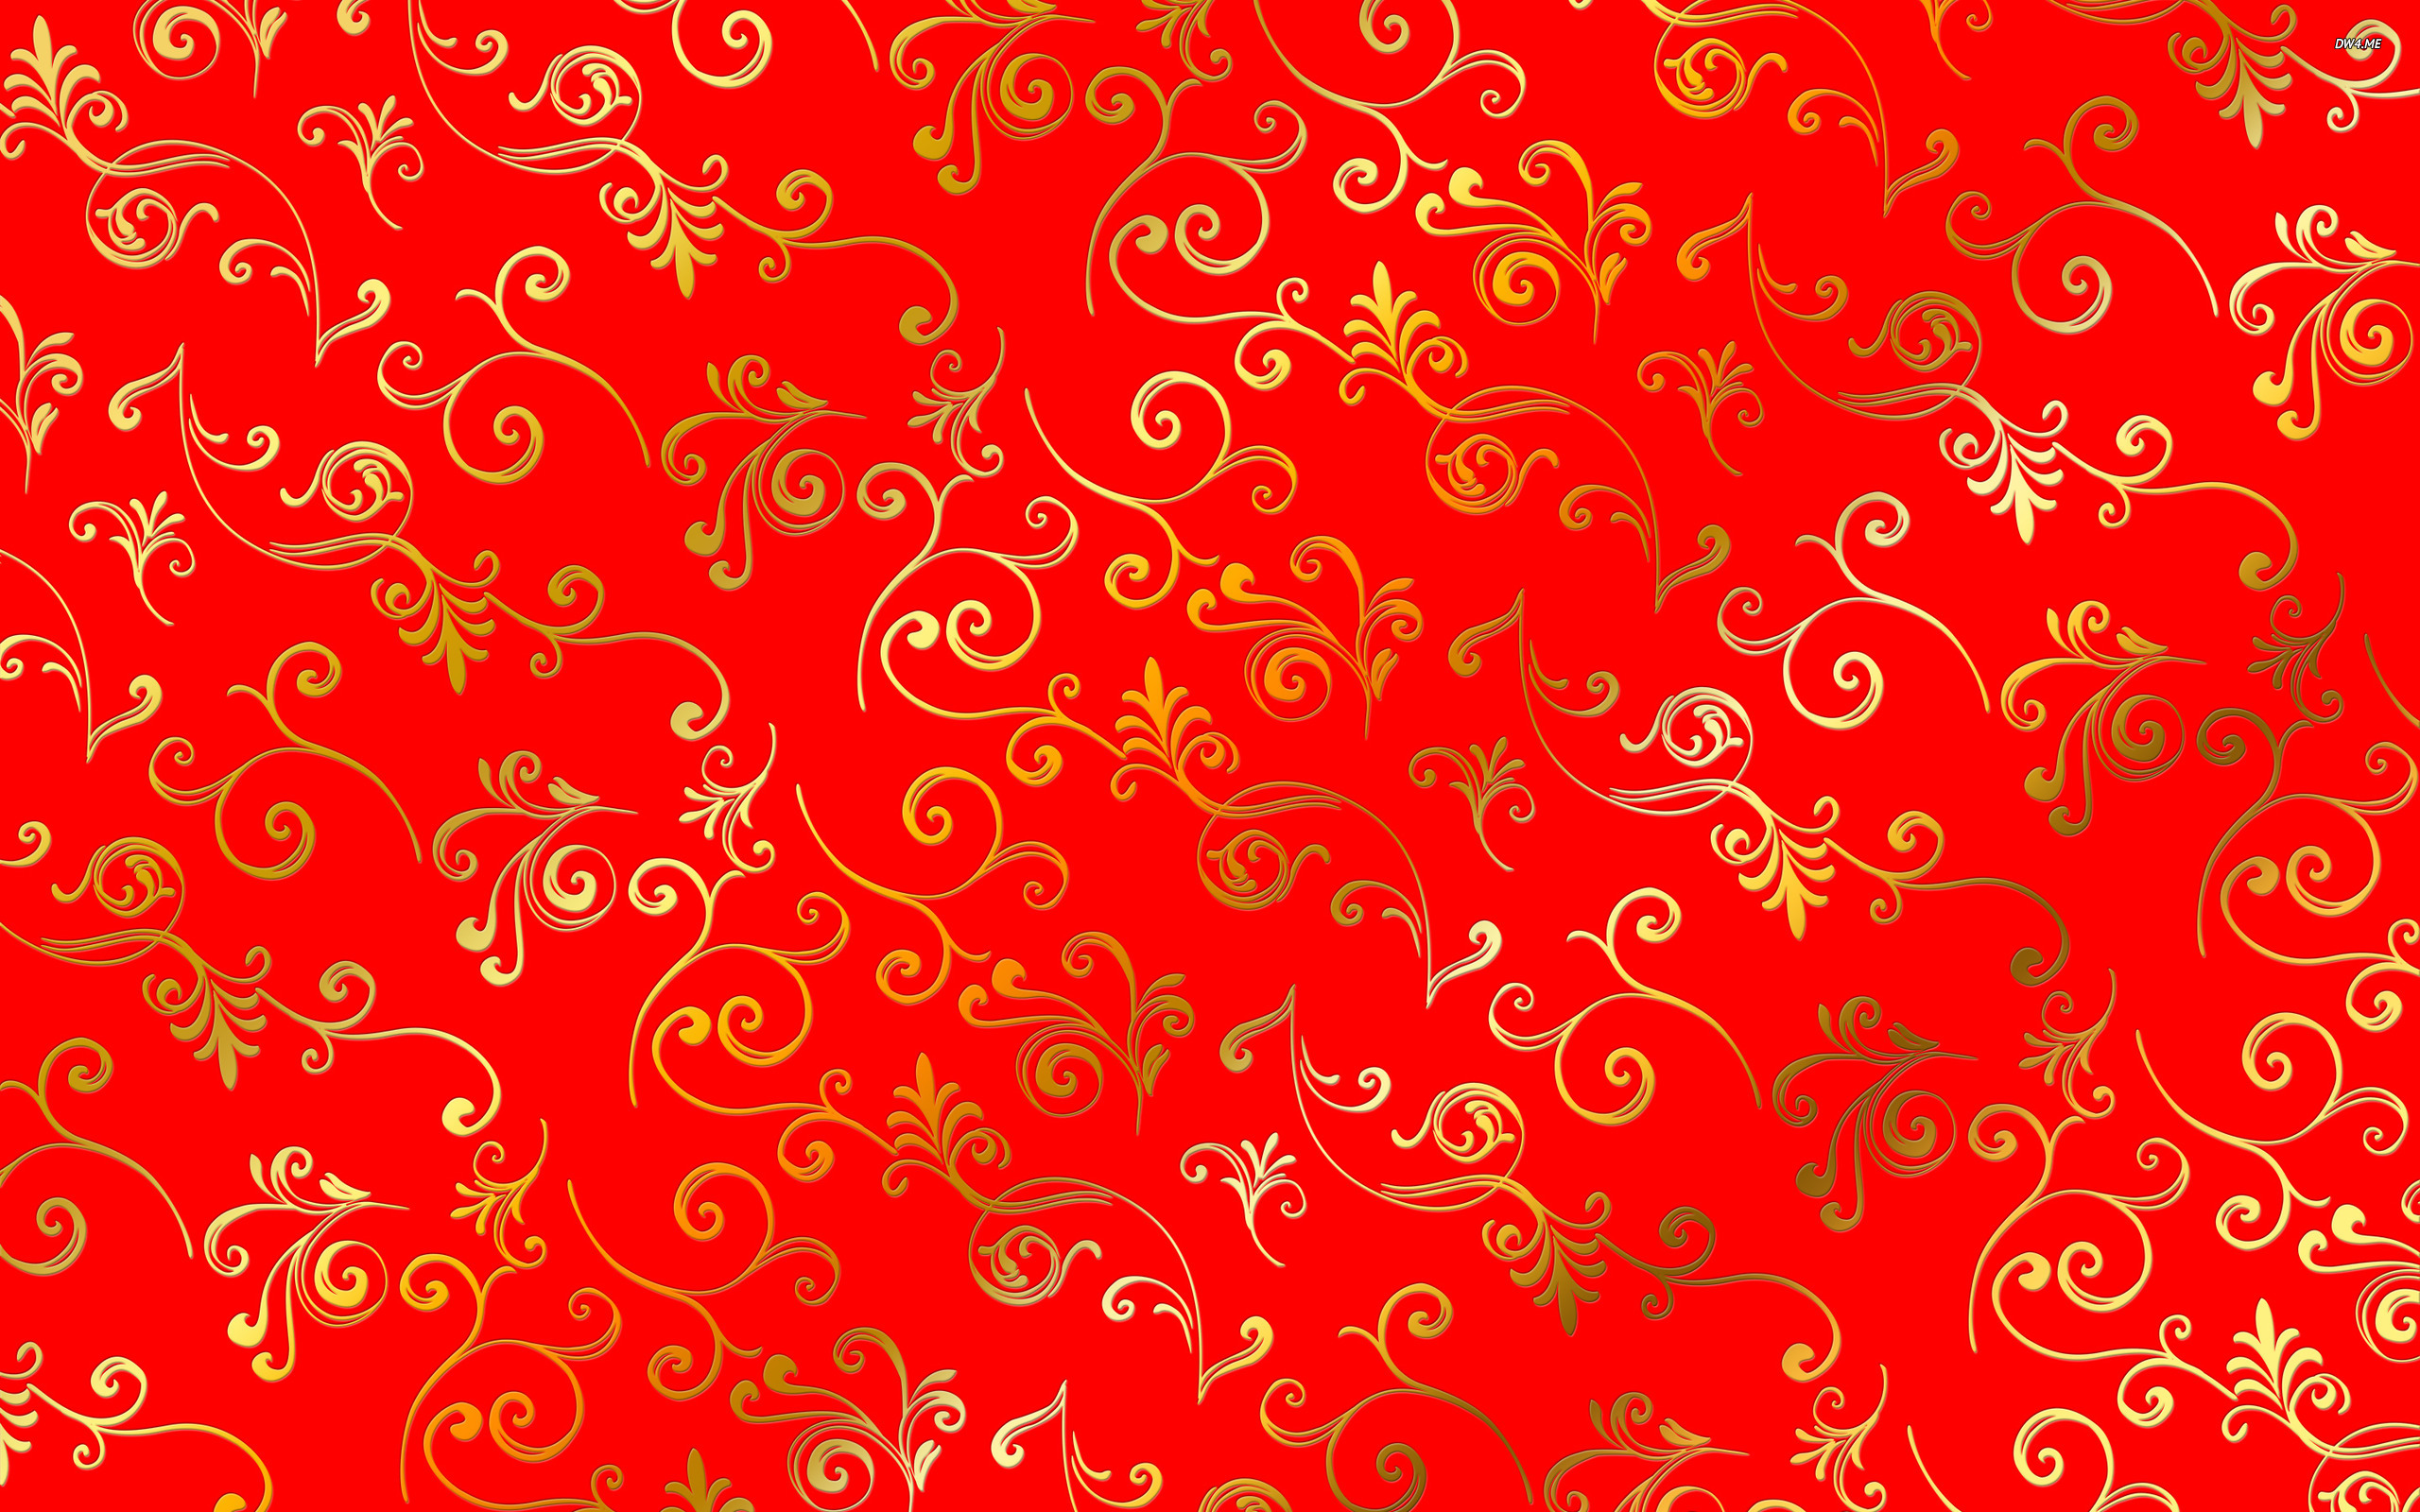 Golden swirl pattern wallpaper   Vector wallpapers   975 2560x1600